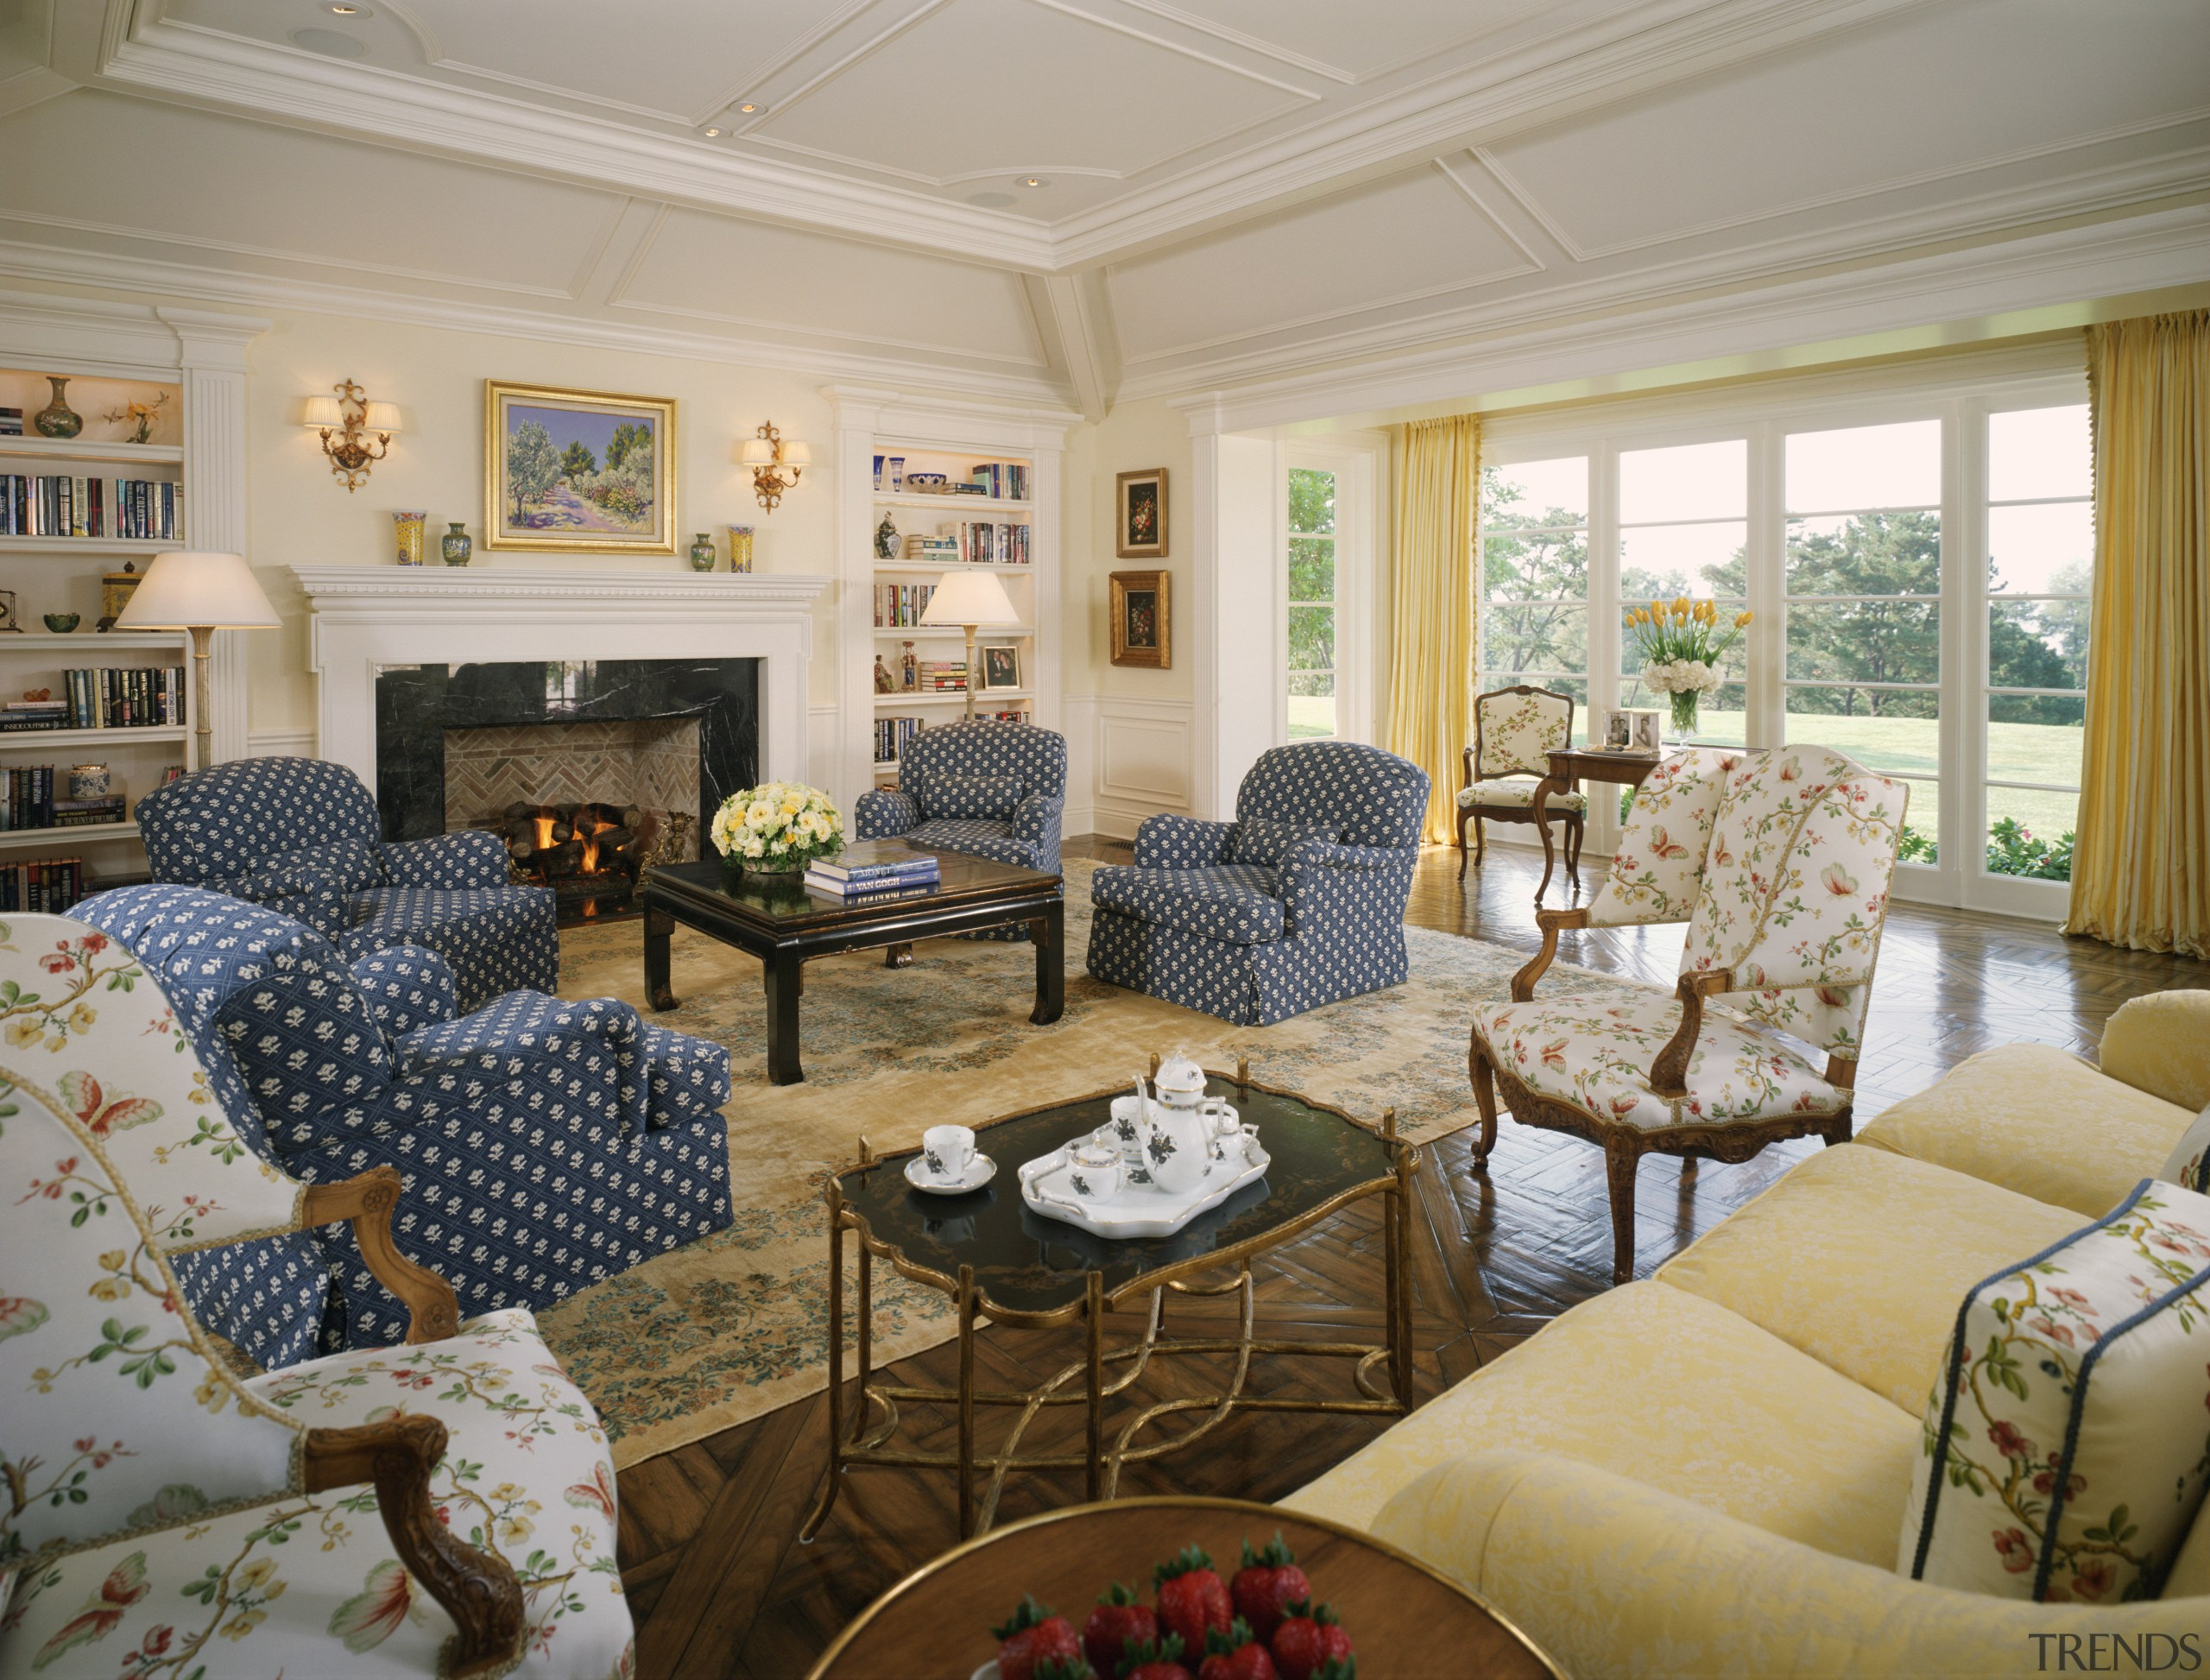 View of living room with fireplace, furniture & ceiling, estate, home, interior design, living room, property, real estate, room, window, gray, brown